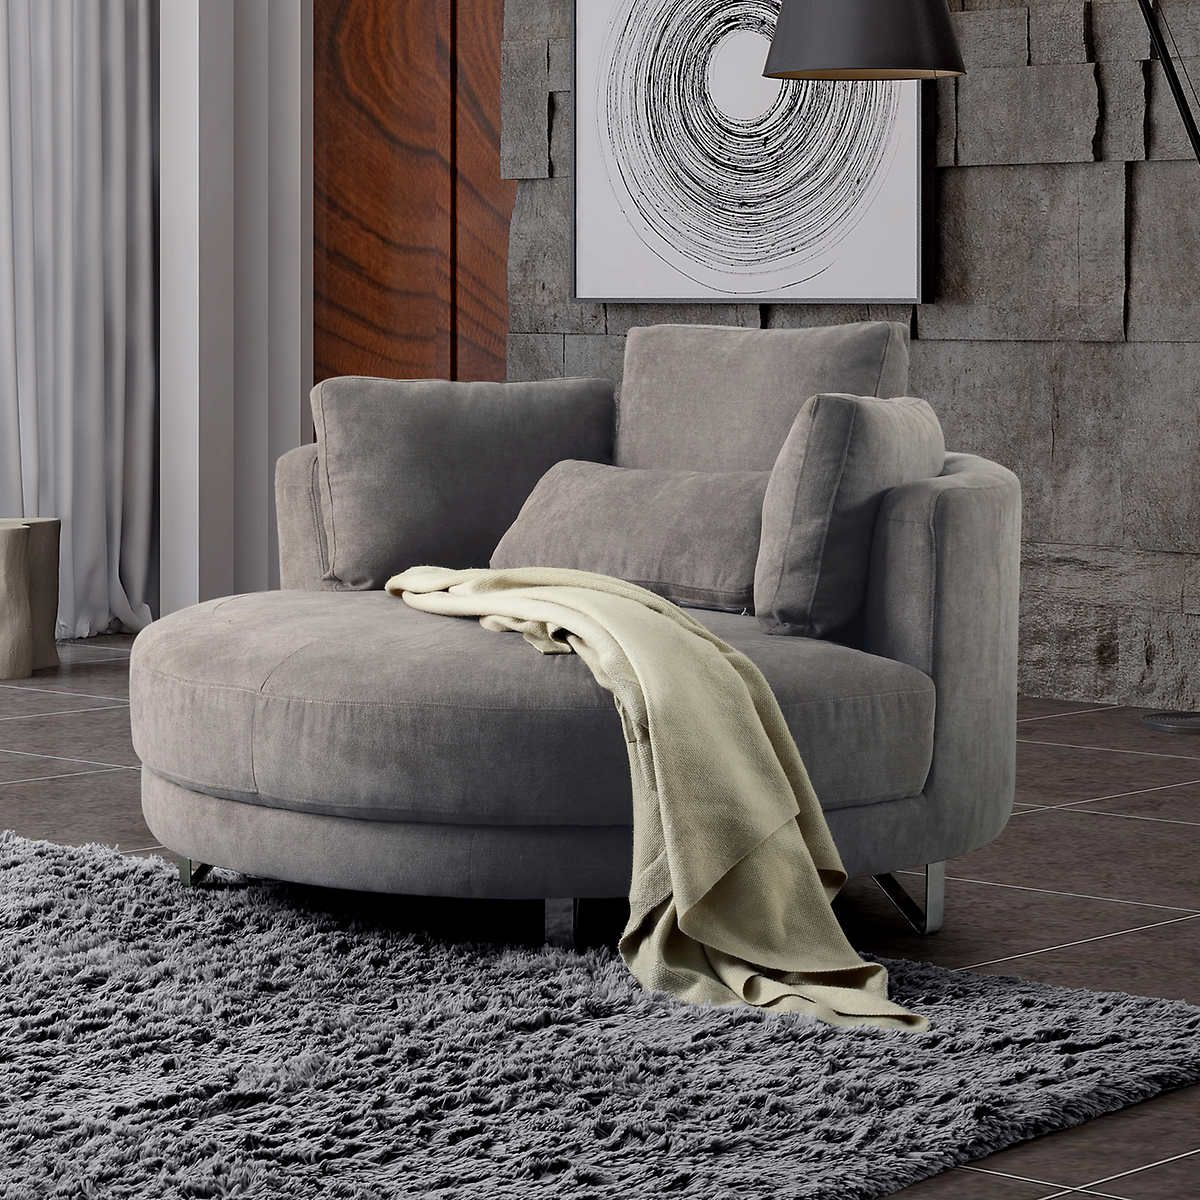 Grey 1 | Cuddler Chair, Chair, Comfy Accent Chairs Pertaining To Cuddler Swivel Sofa Chairs (View 6 of 15)